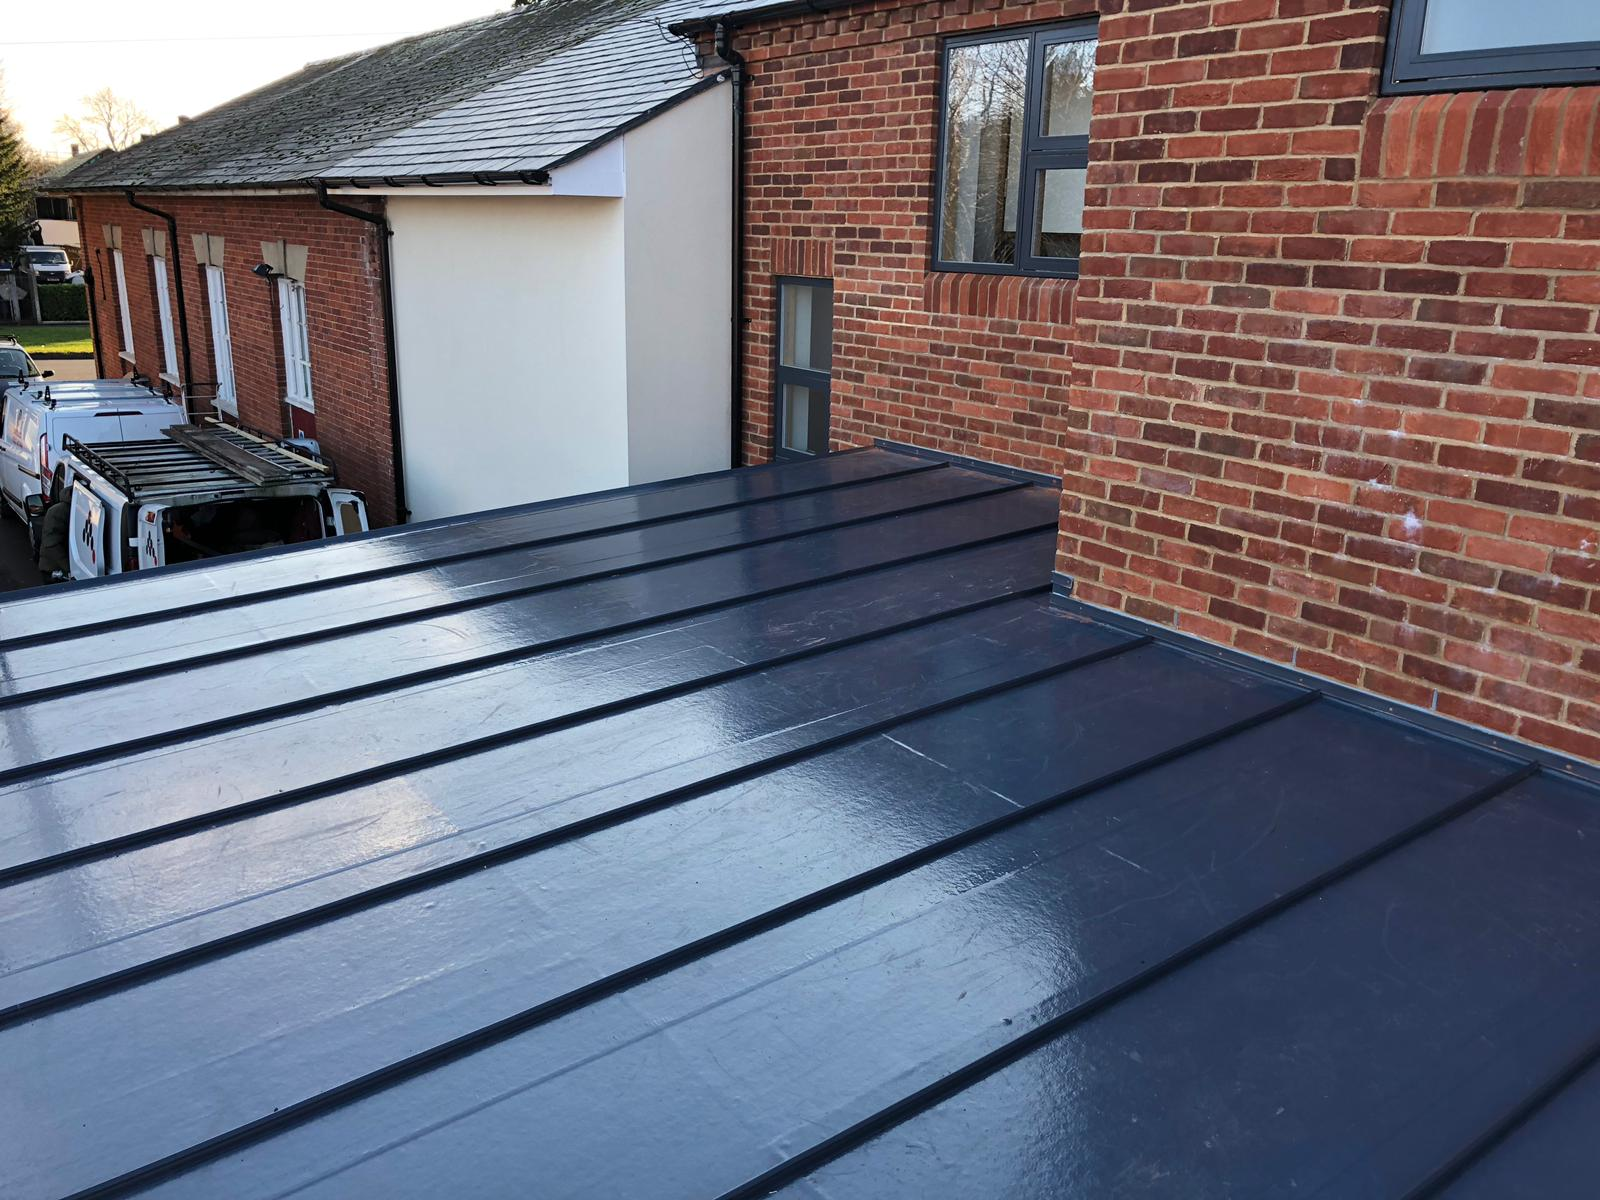 Roof Replacement Dorset Complete Roofing Solutions